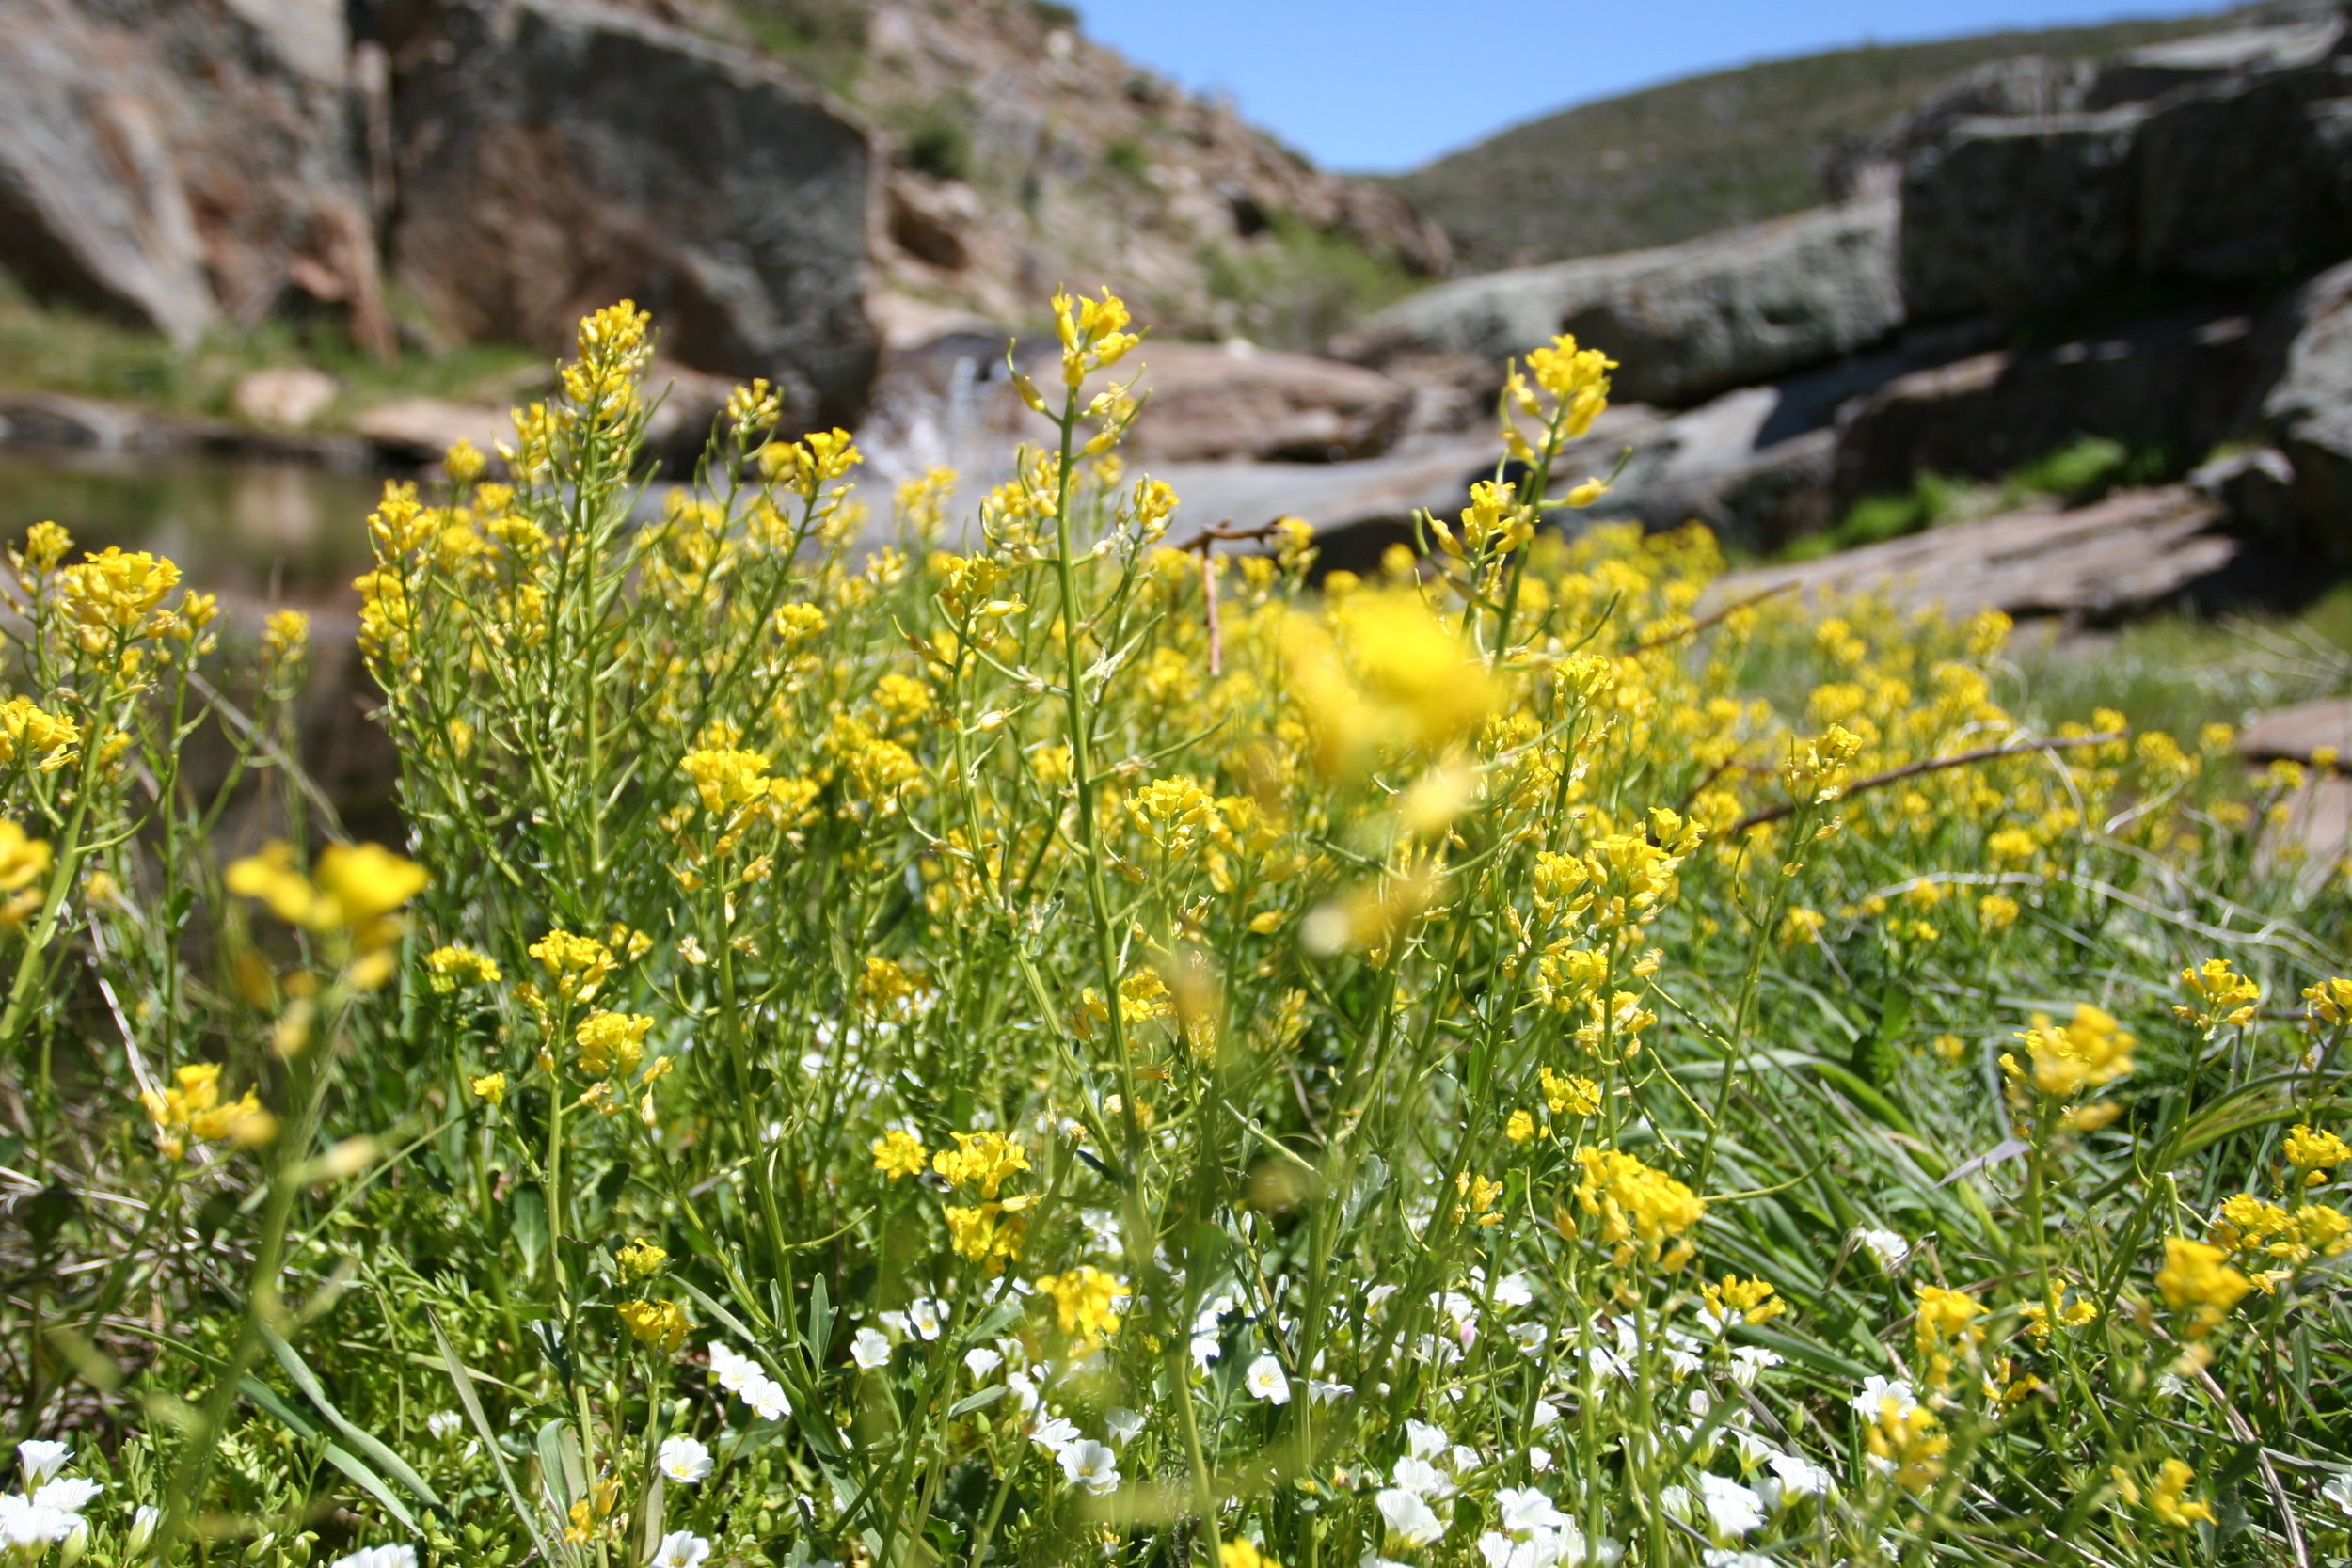 Harper's Creek is also a great spot to see wildflowers during the spring.